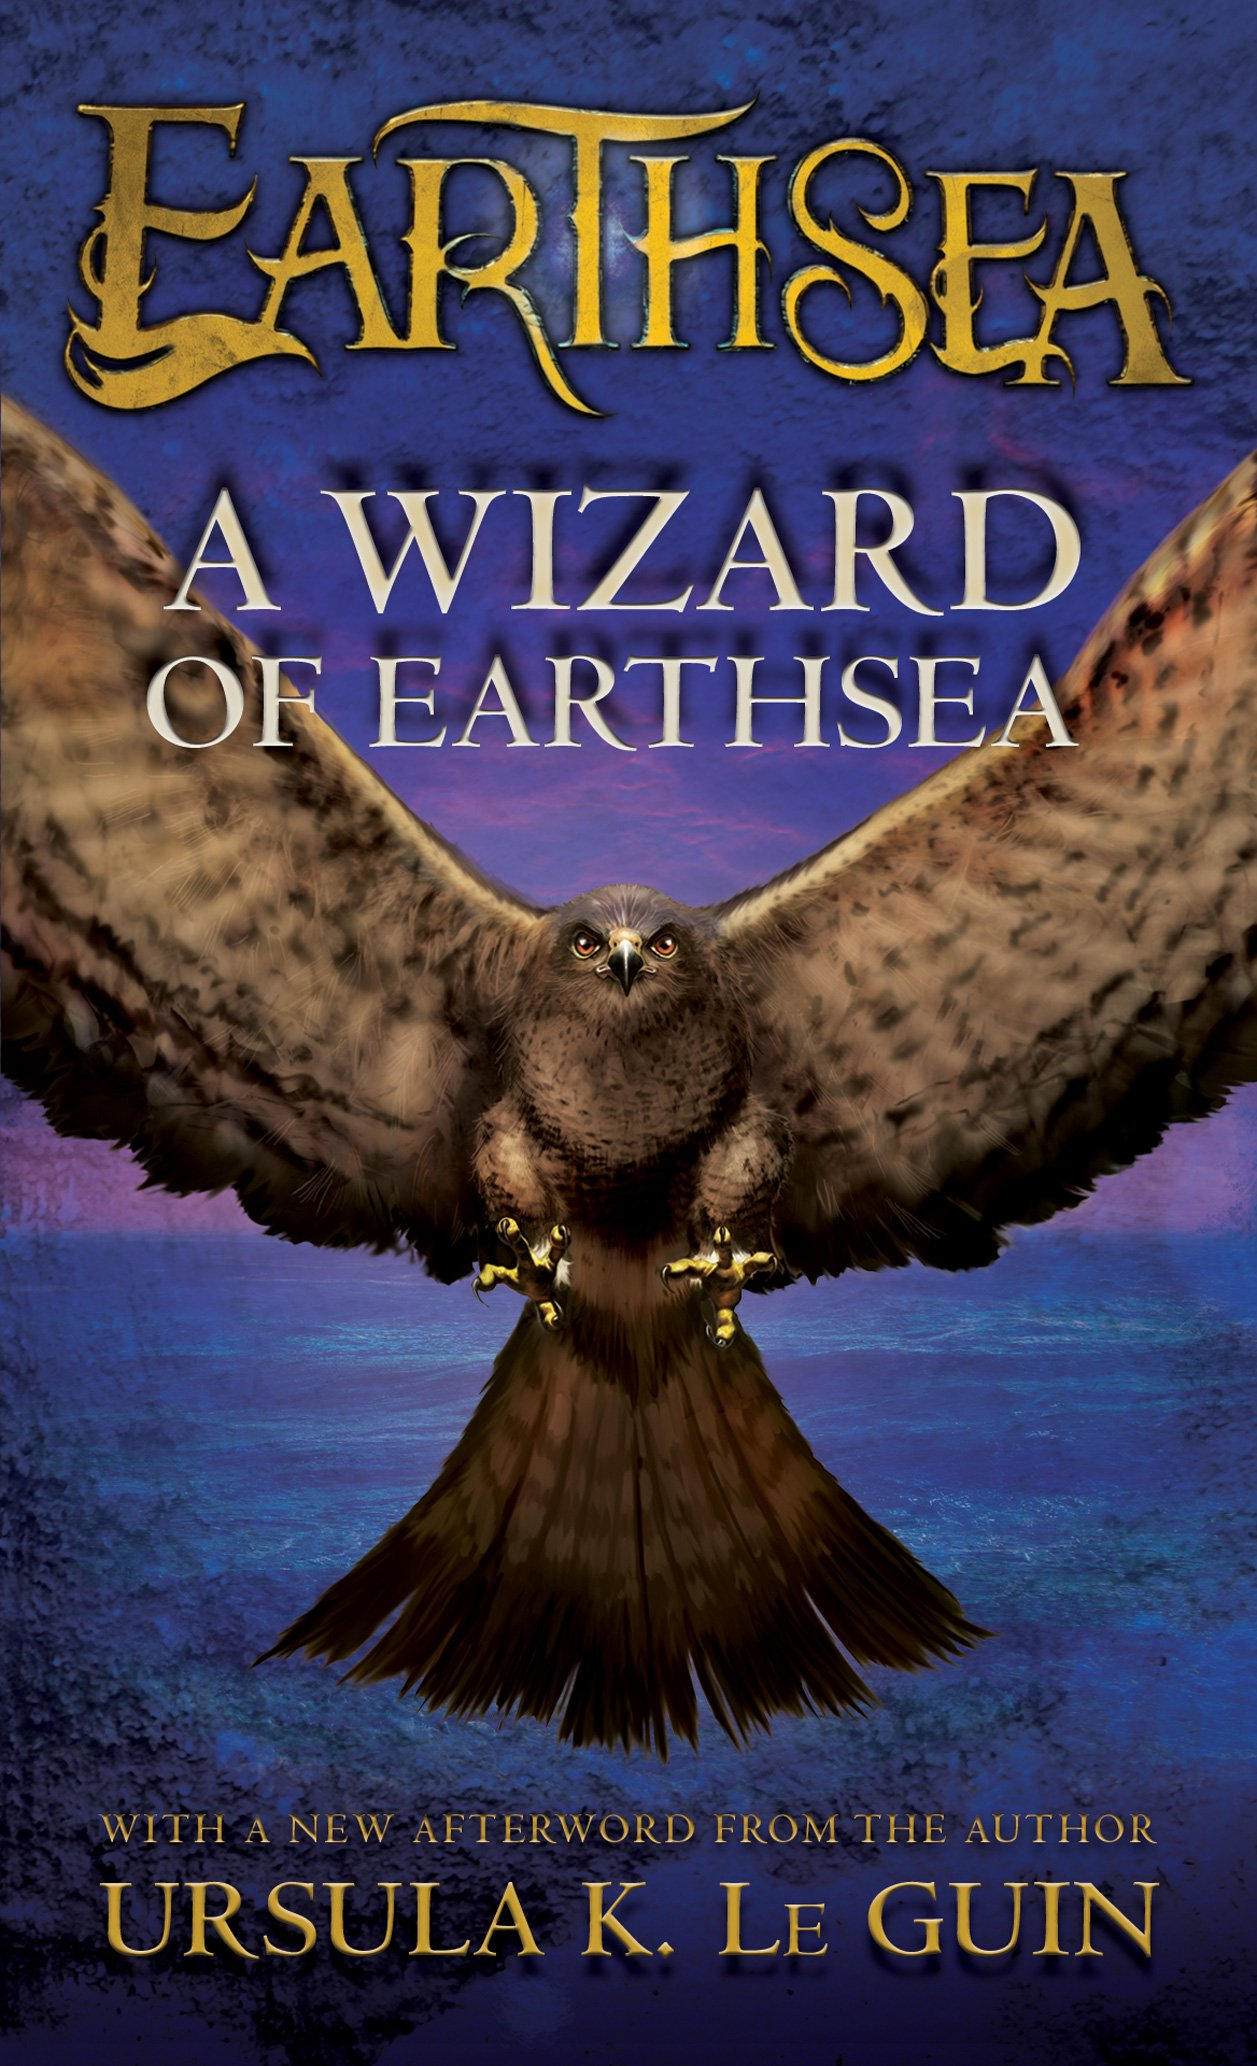 A Wizard of Earthsea, by Ursula K. Le Guin